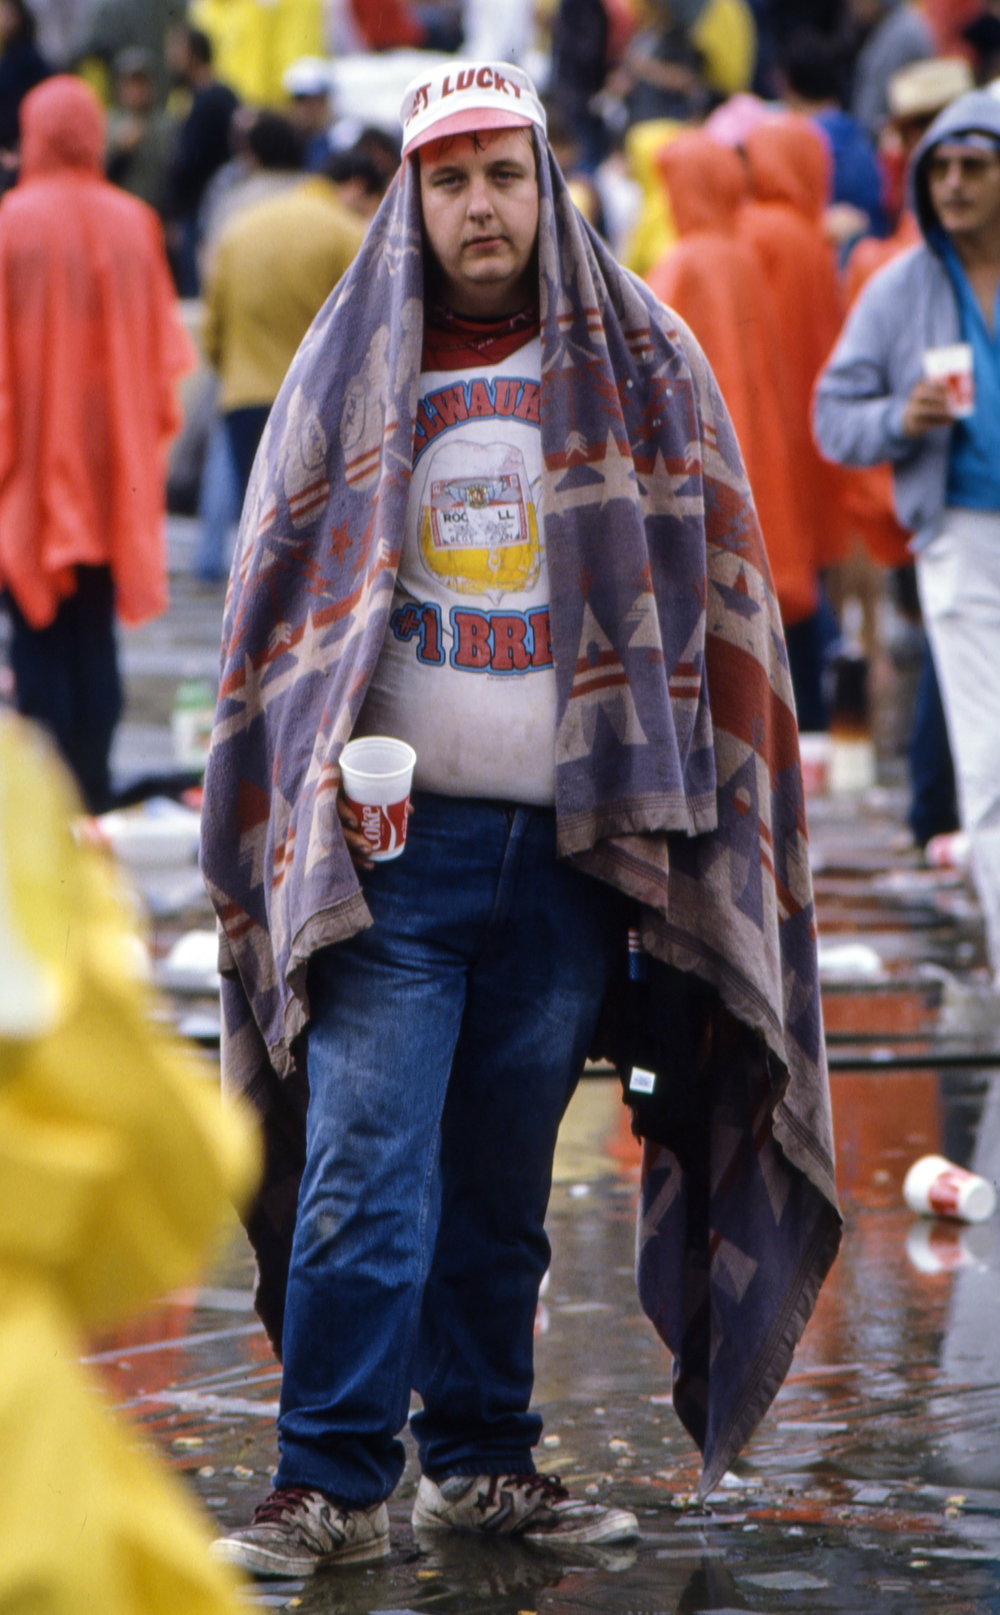 A spectator uses a blanket for rain protection during the Farm Aid concert at Memorial Stadium in Champaign, Ill. Sept. 22, 1985. [File/The State Journal-Register]